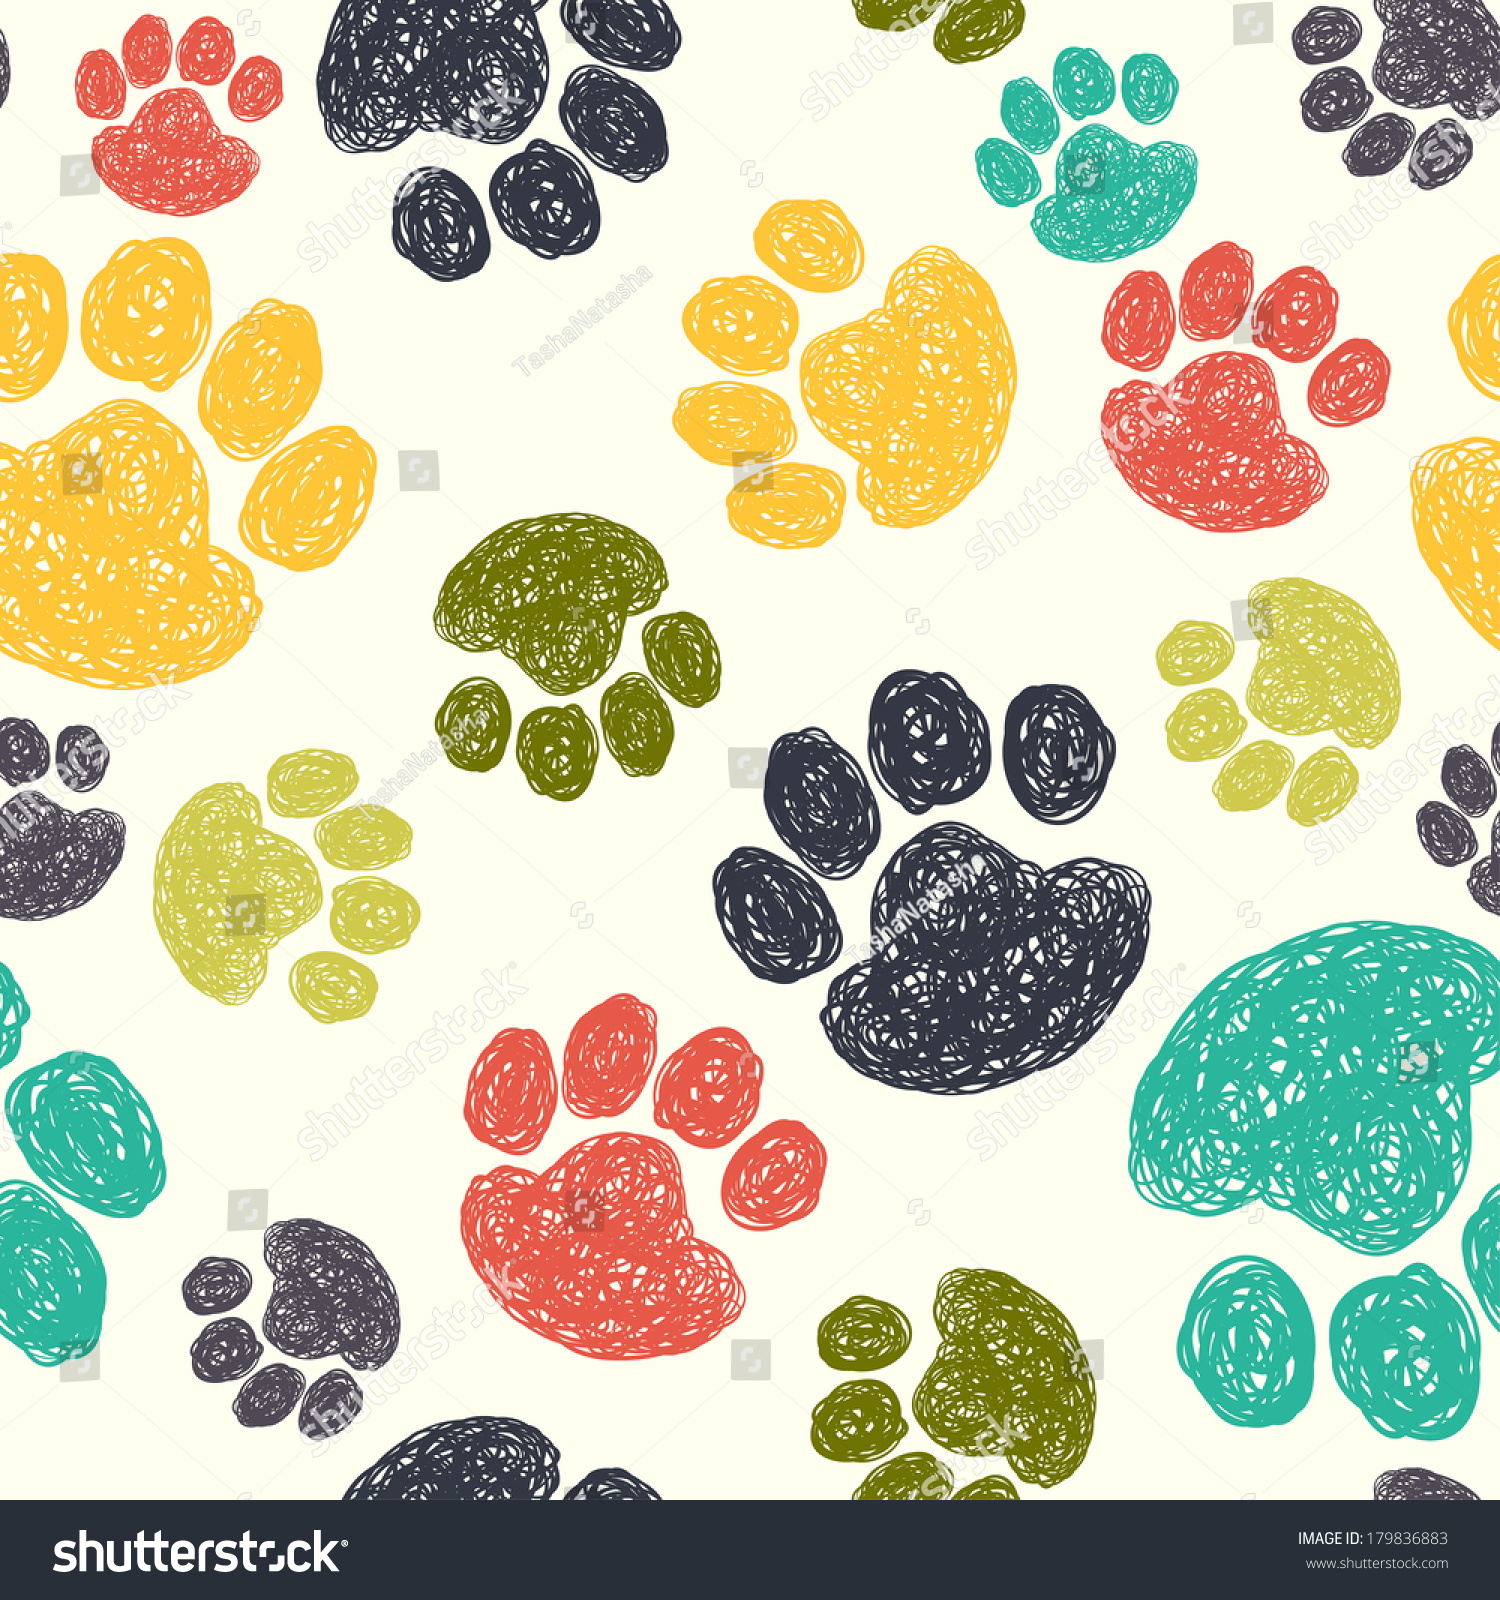 Cute animal print patterns - photo#13